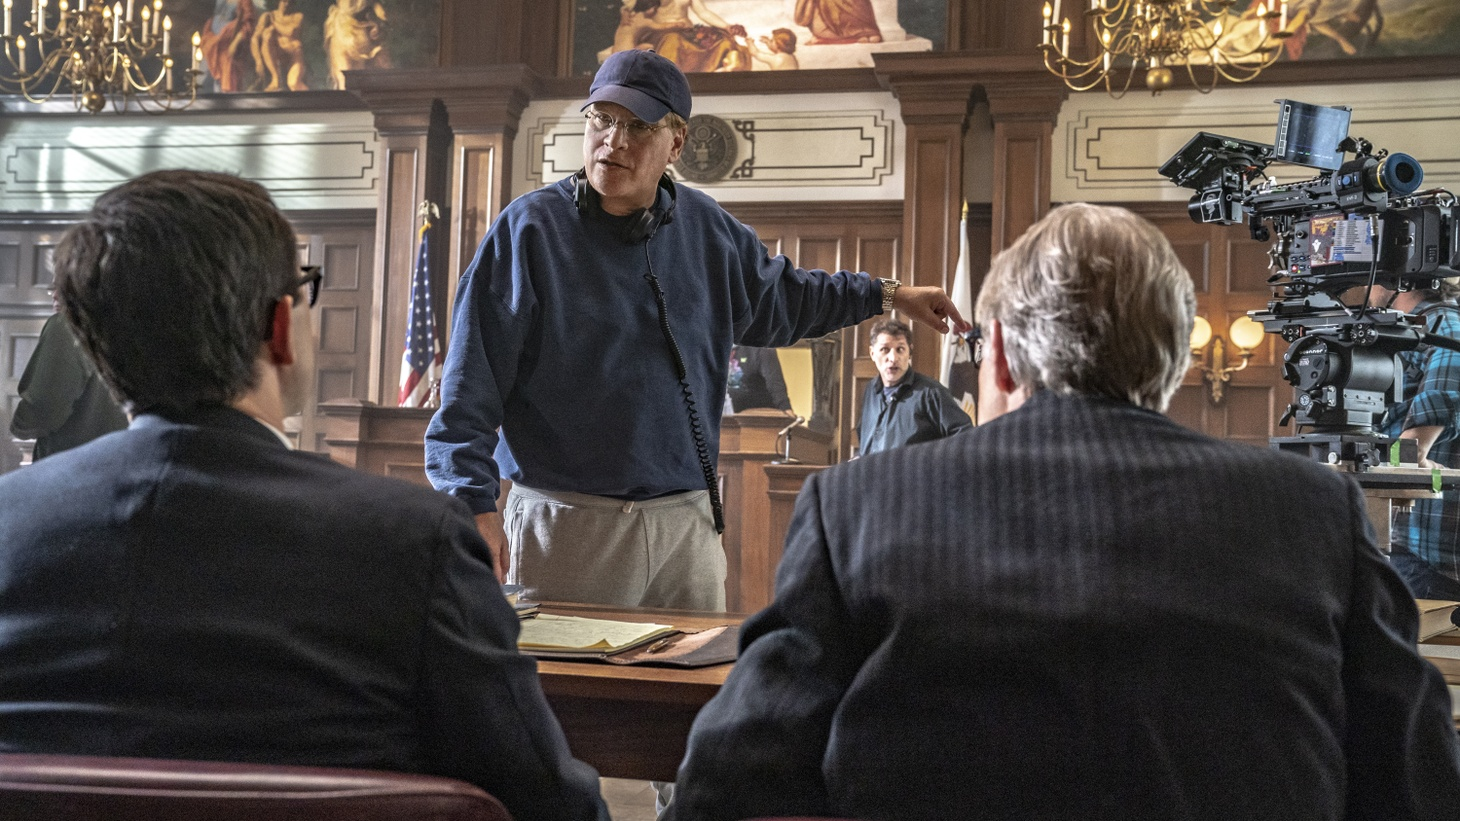 Director, Aaron Sorkin behind the scenes in 'The Trial of the Chicago 7.'